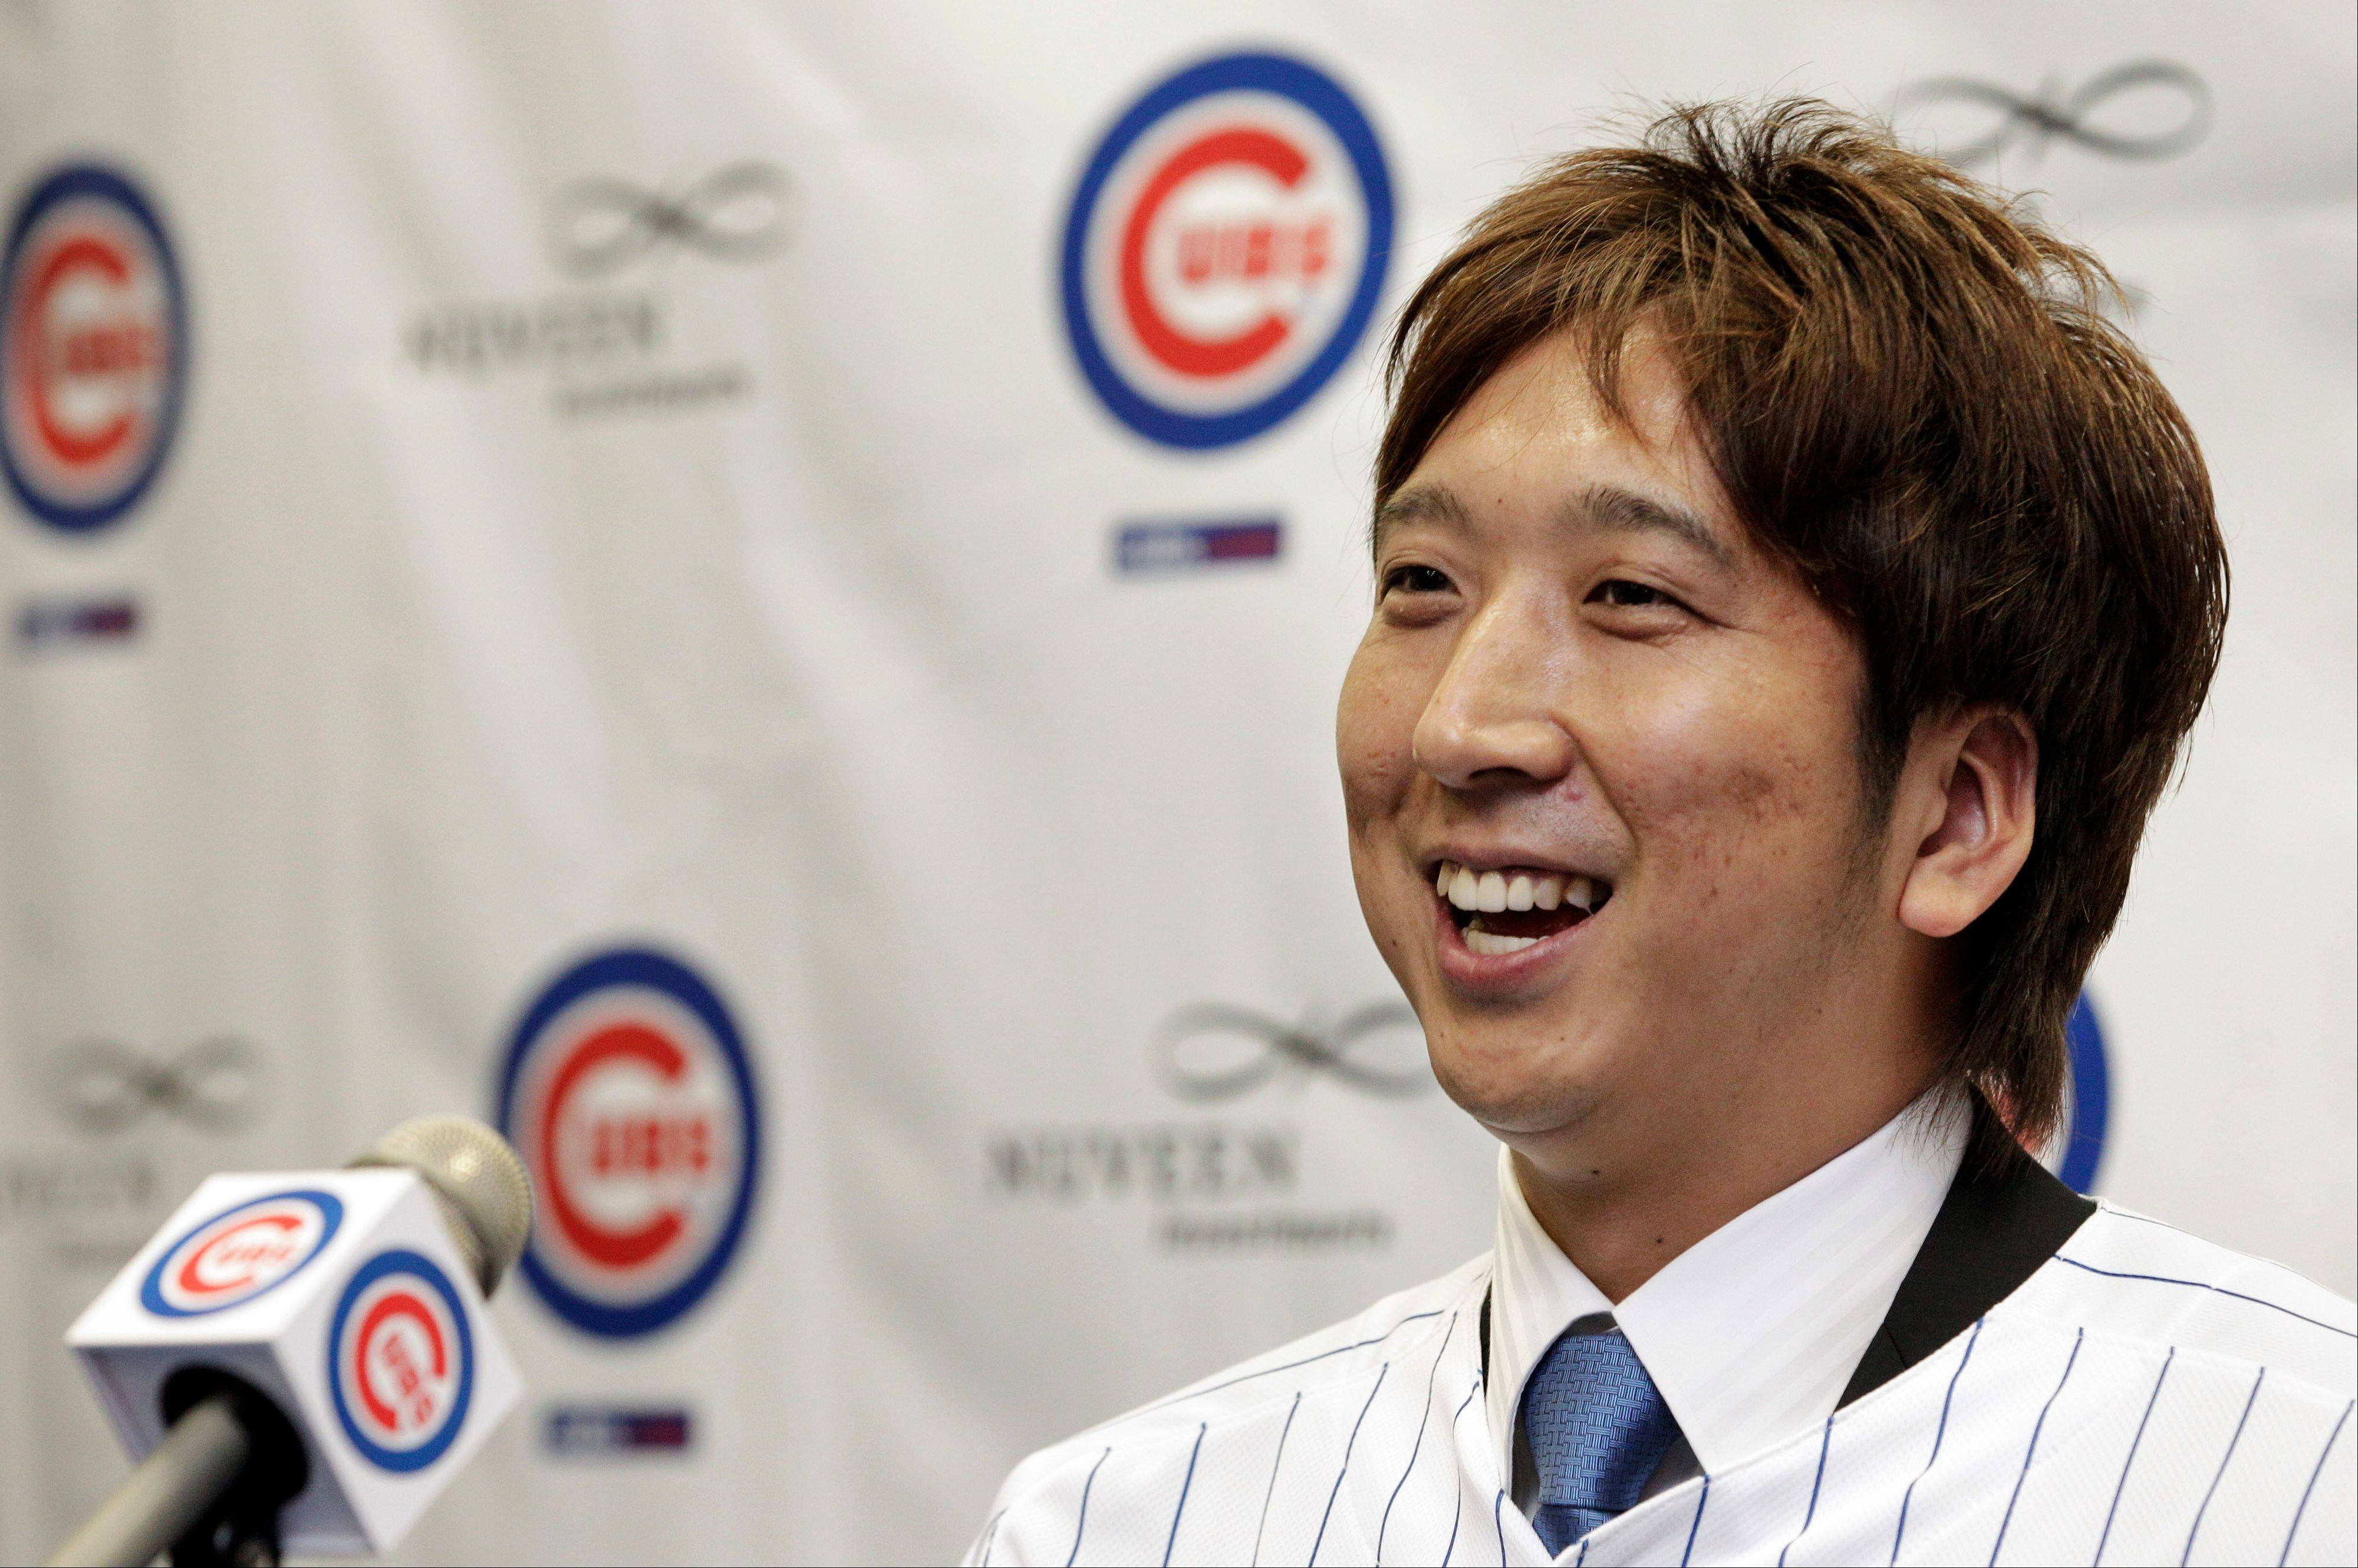 New Cubs pitcher Kyuji Fujikawa pitched the last 12 seasons with the Hanshin Tigers of Japan's Central League. He signed a two-year contract for $9.5 million to join the Cubs.